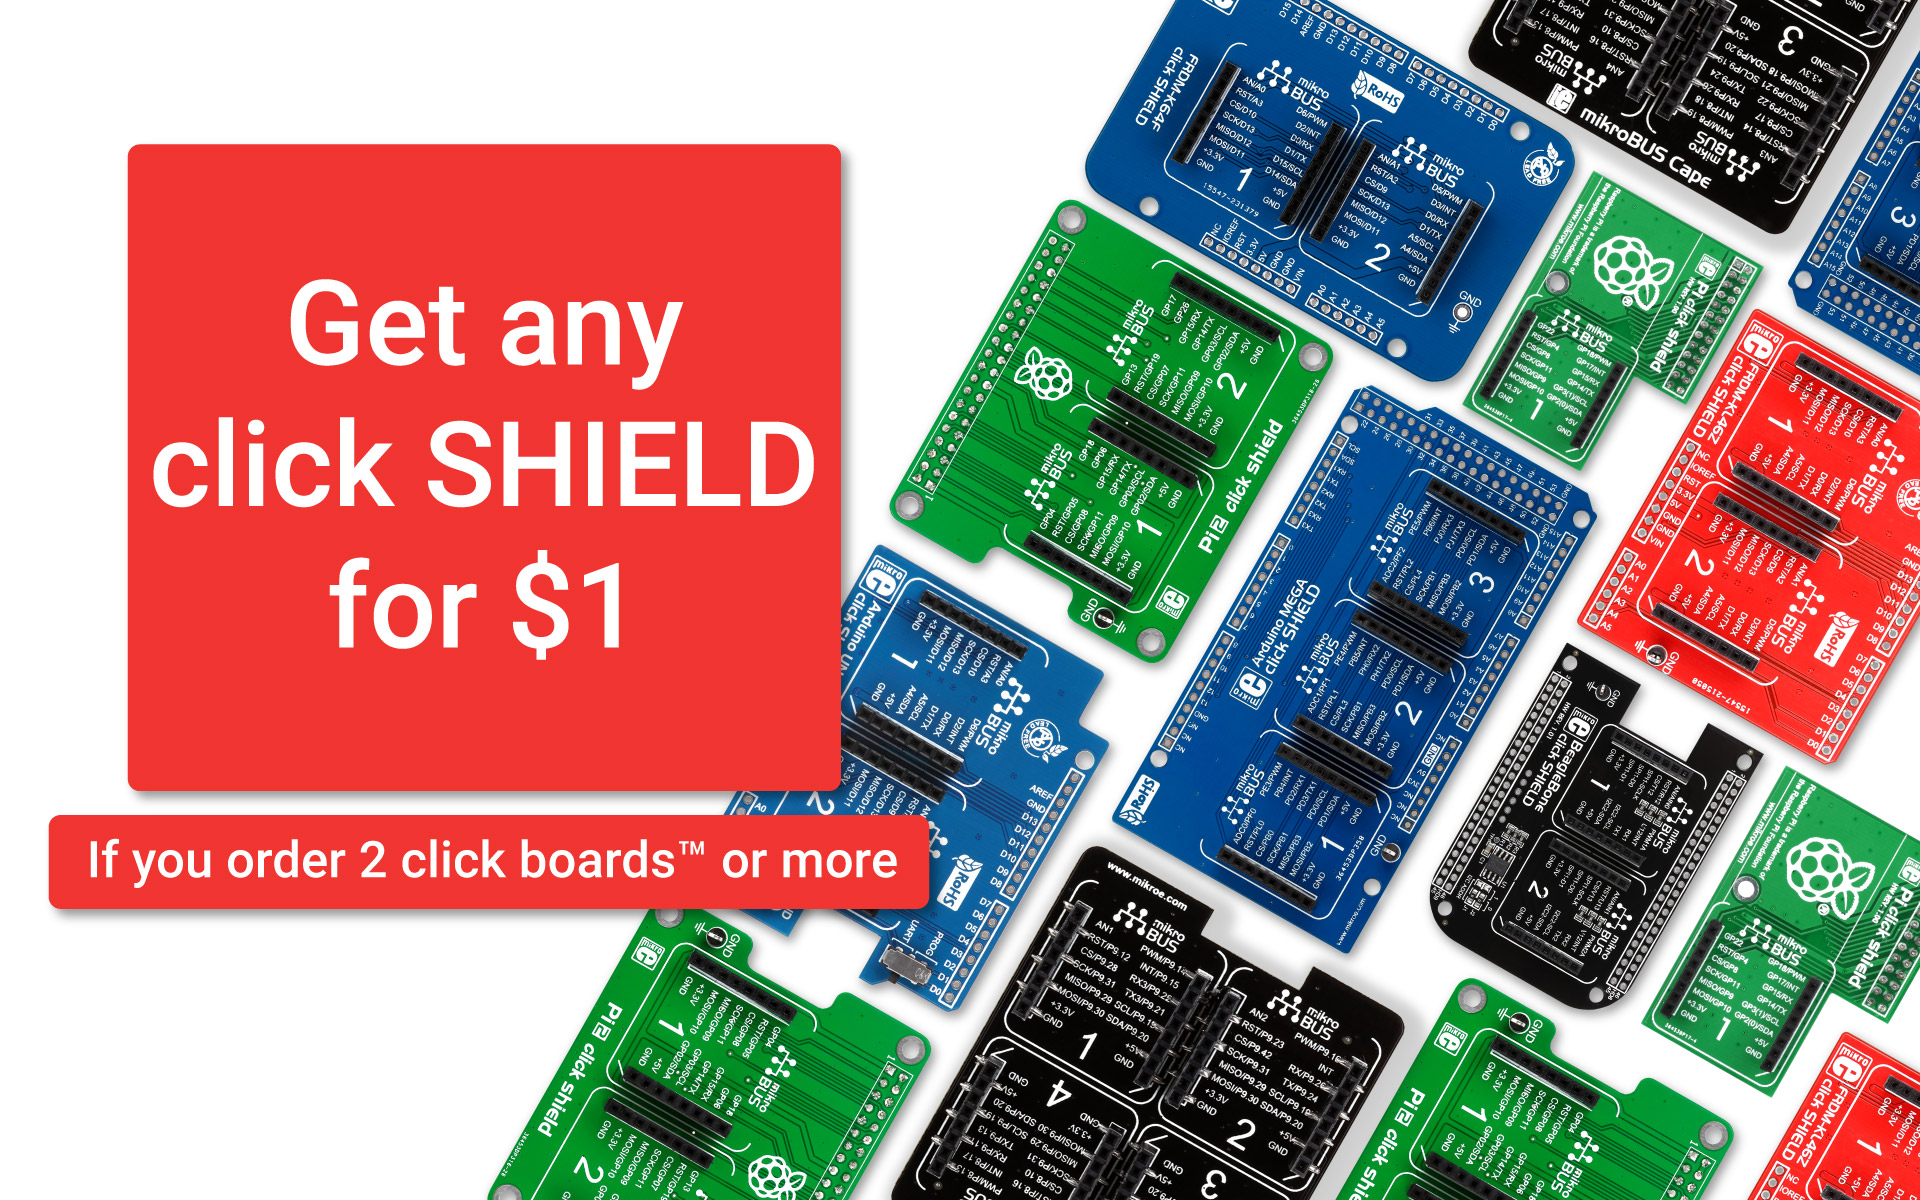 Special offer - get a click shield for only $1